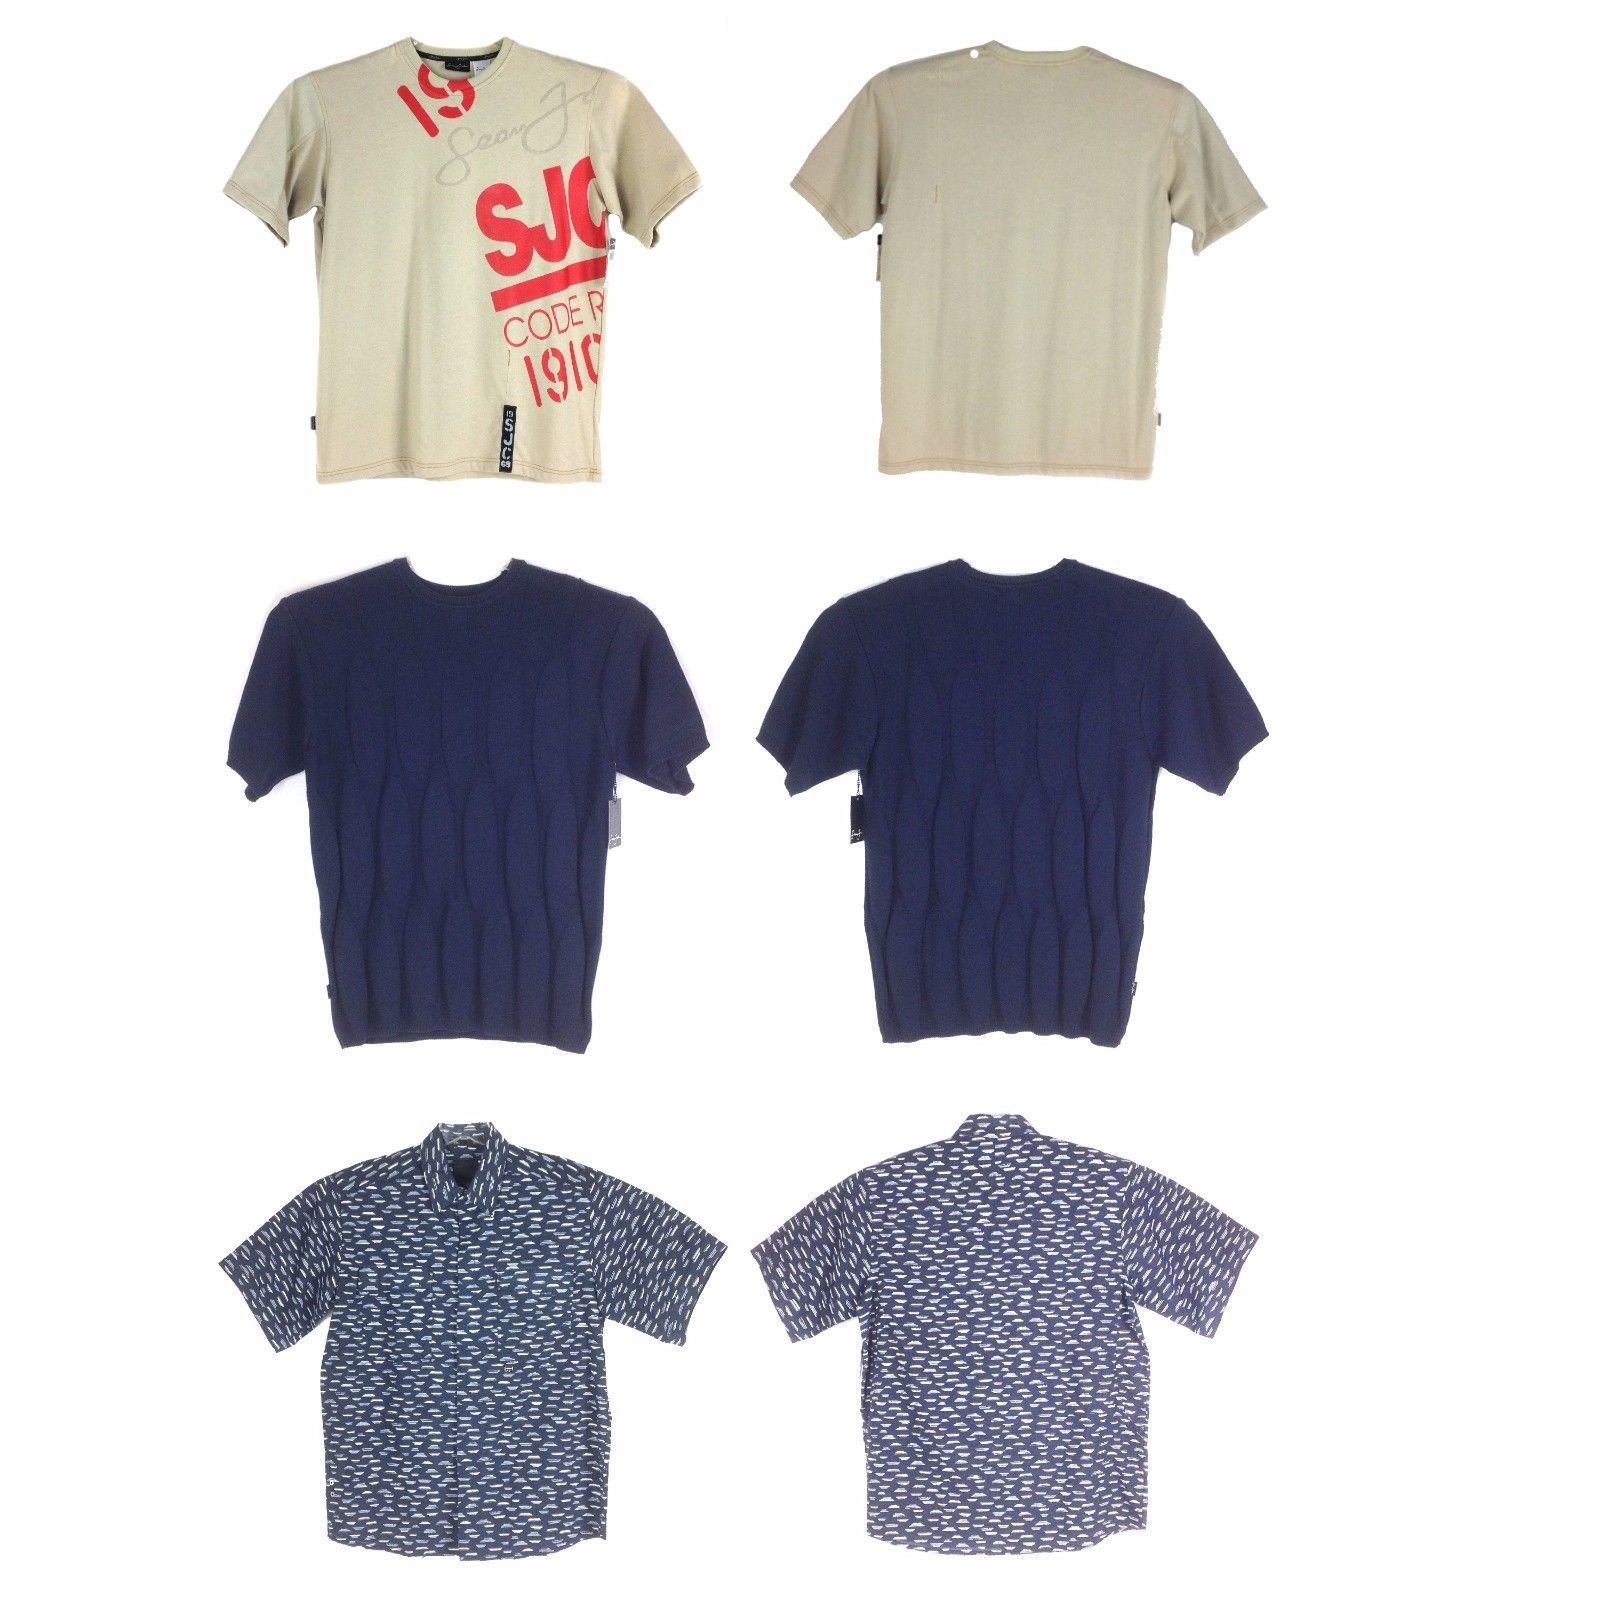 Primary image for Sean John SHORT SLEEVES MEN'S TOPS, ASSORTED STYLES/COLORS, LIMITED SIZES